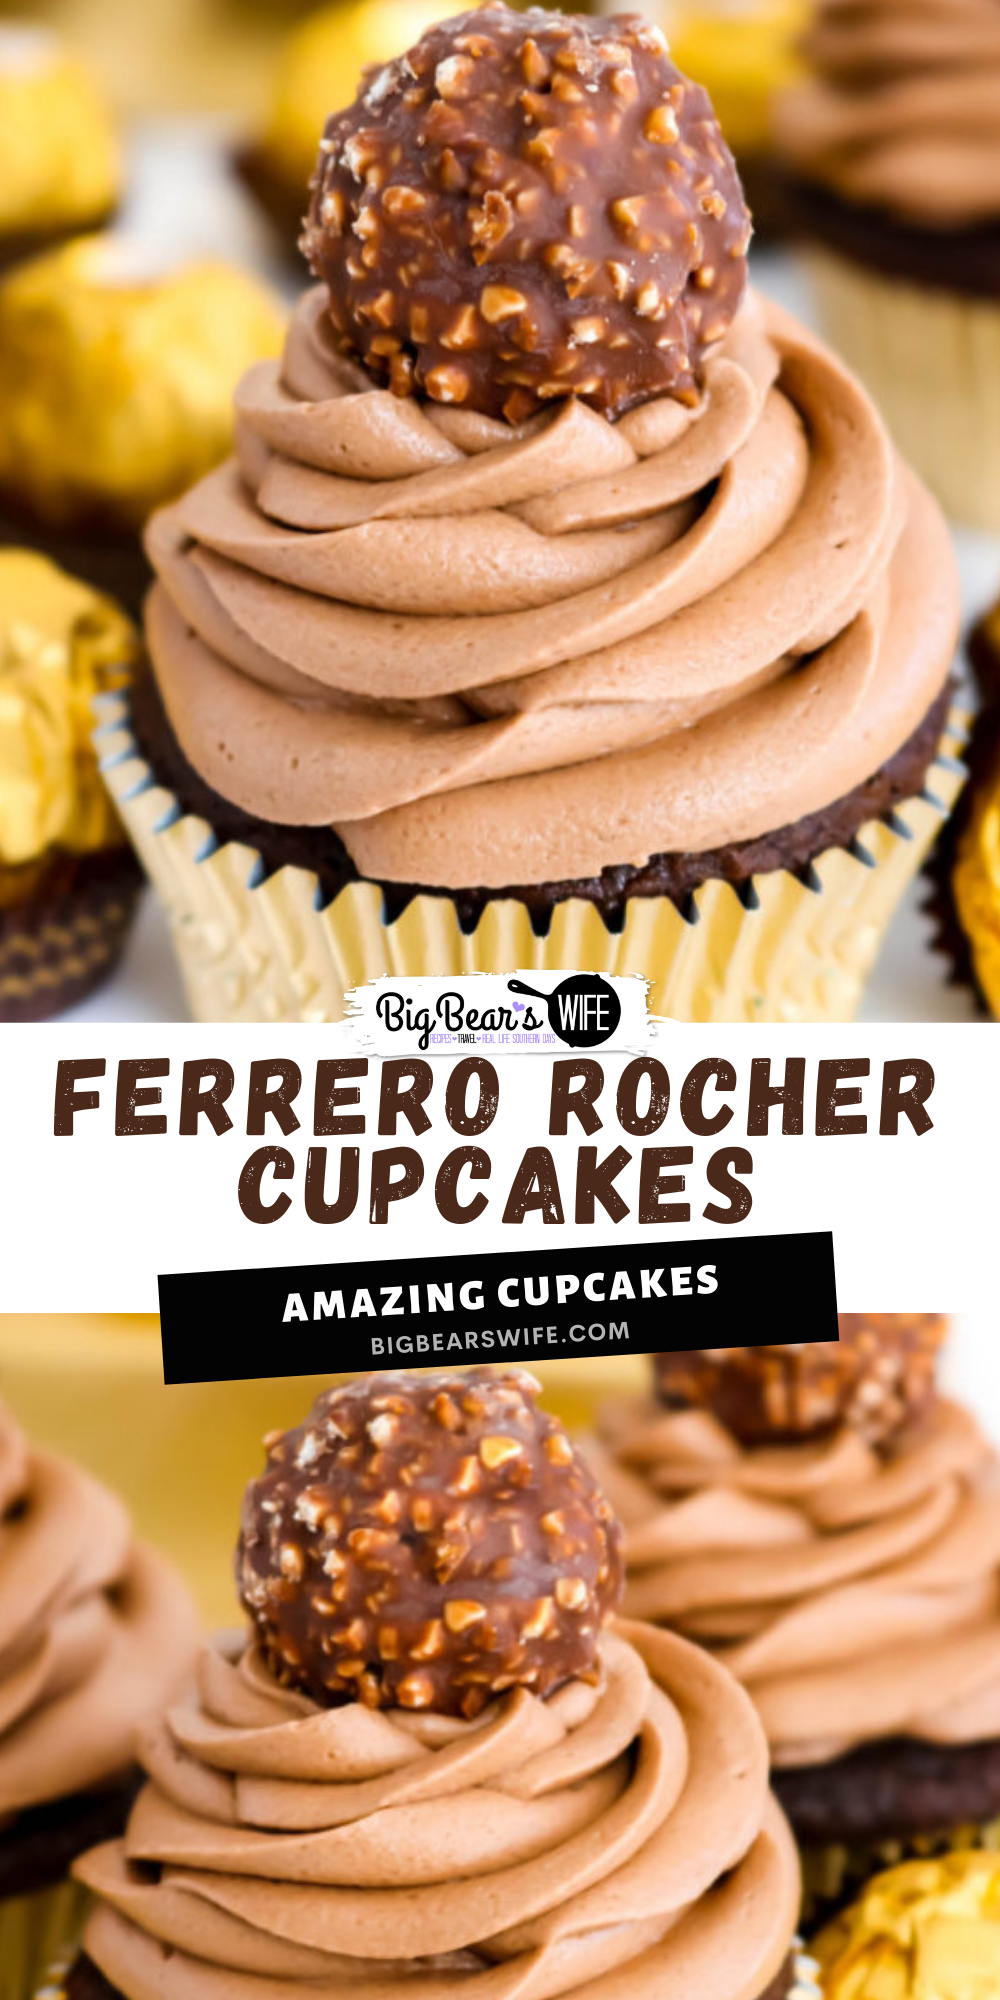 Love Ferrero Rocher Candies? Then these Ferrero Rocher Cupcakes are going to be your new favorite dessert! Homemade Chocolate cupcakes with a chocolate hazelnut frosting is topped with a Ferrero Rocher Chocolate and dressed in a gold cupcake liner for the most elegant cupcake ever. via @bigbearswife